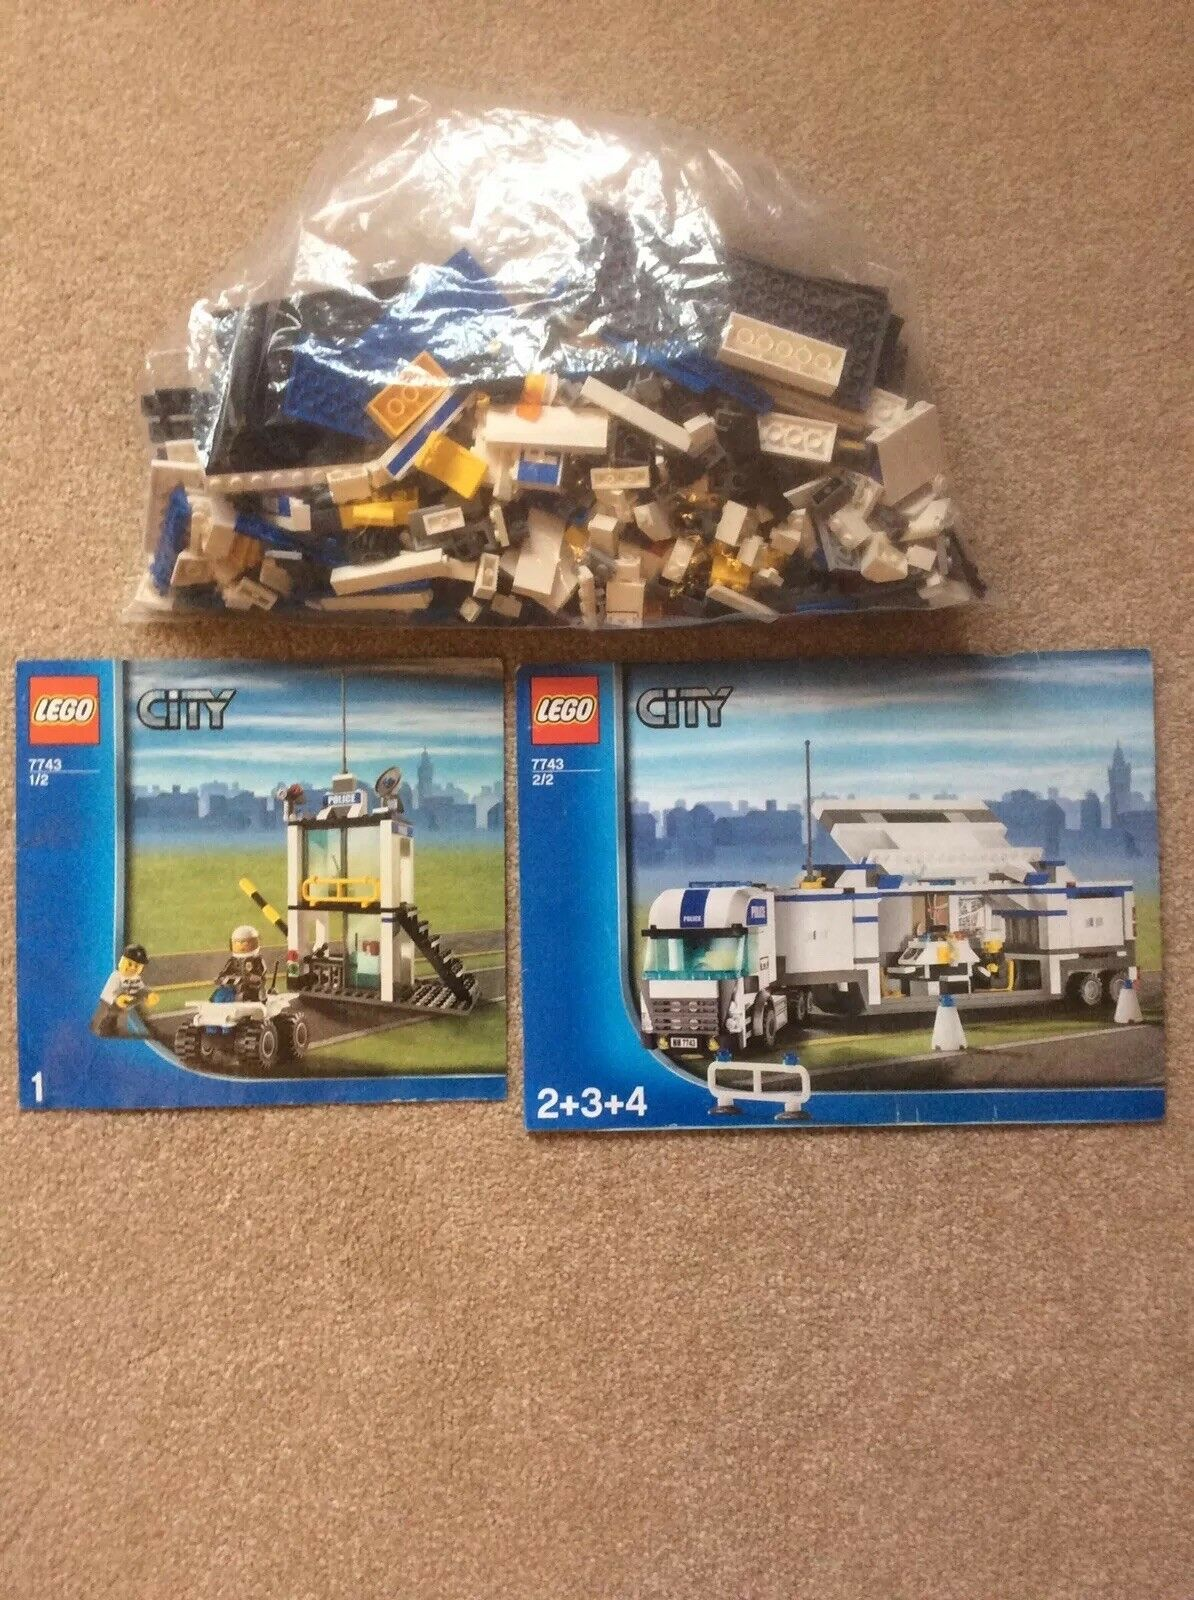 Lego City Police Command Centre 7743